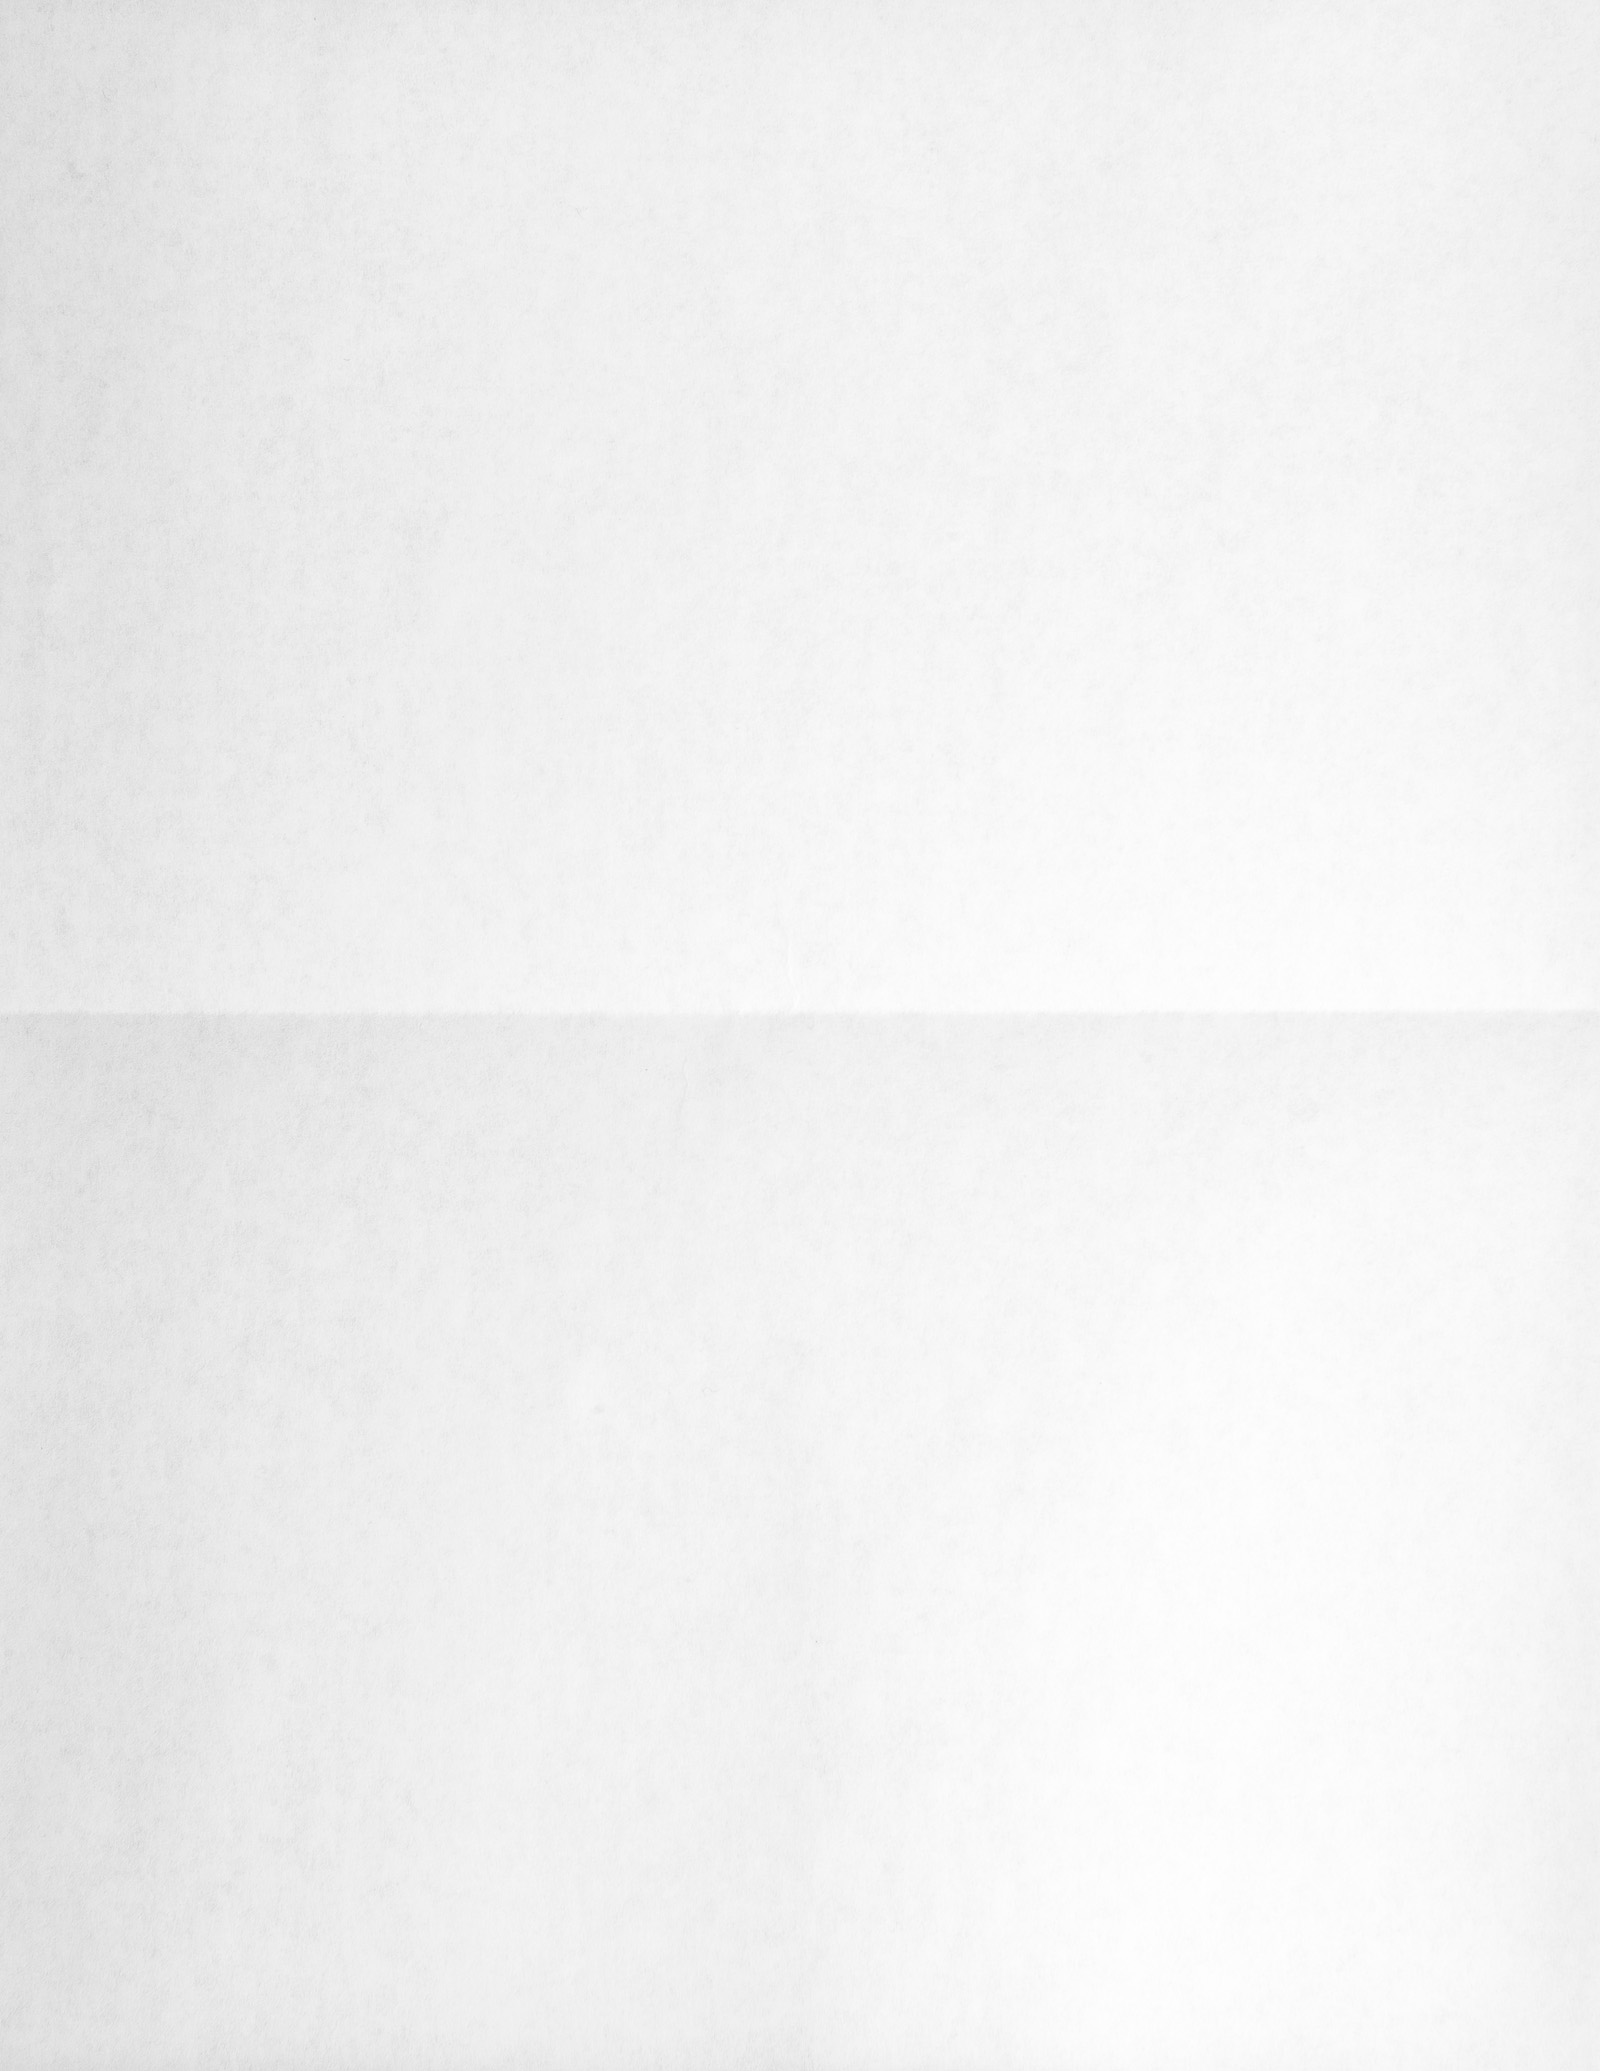 White left the crease paper textures 51745